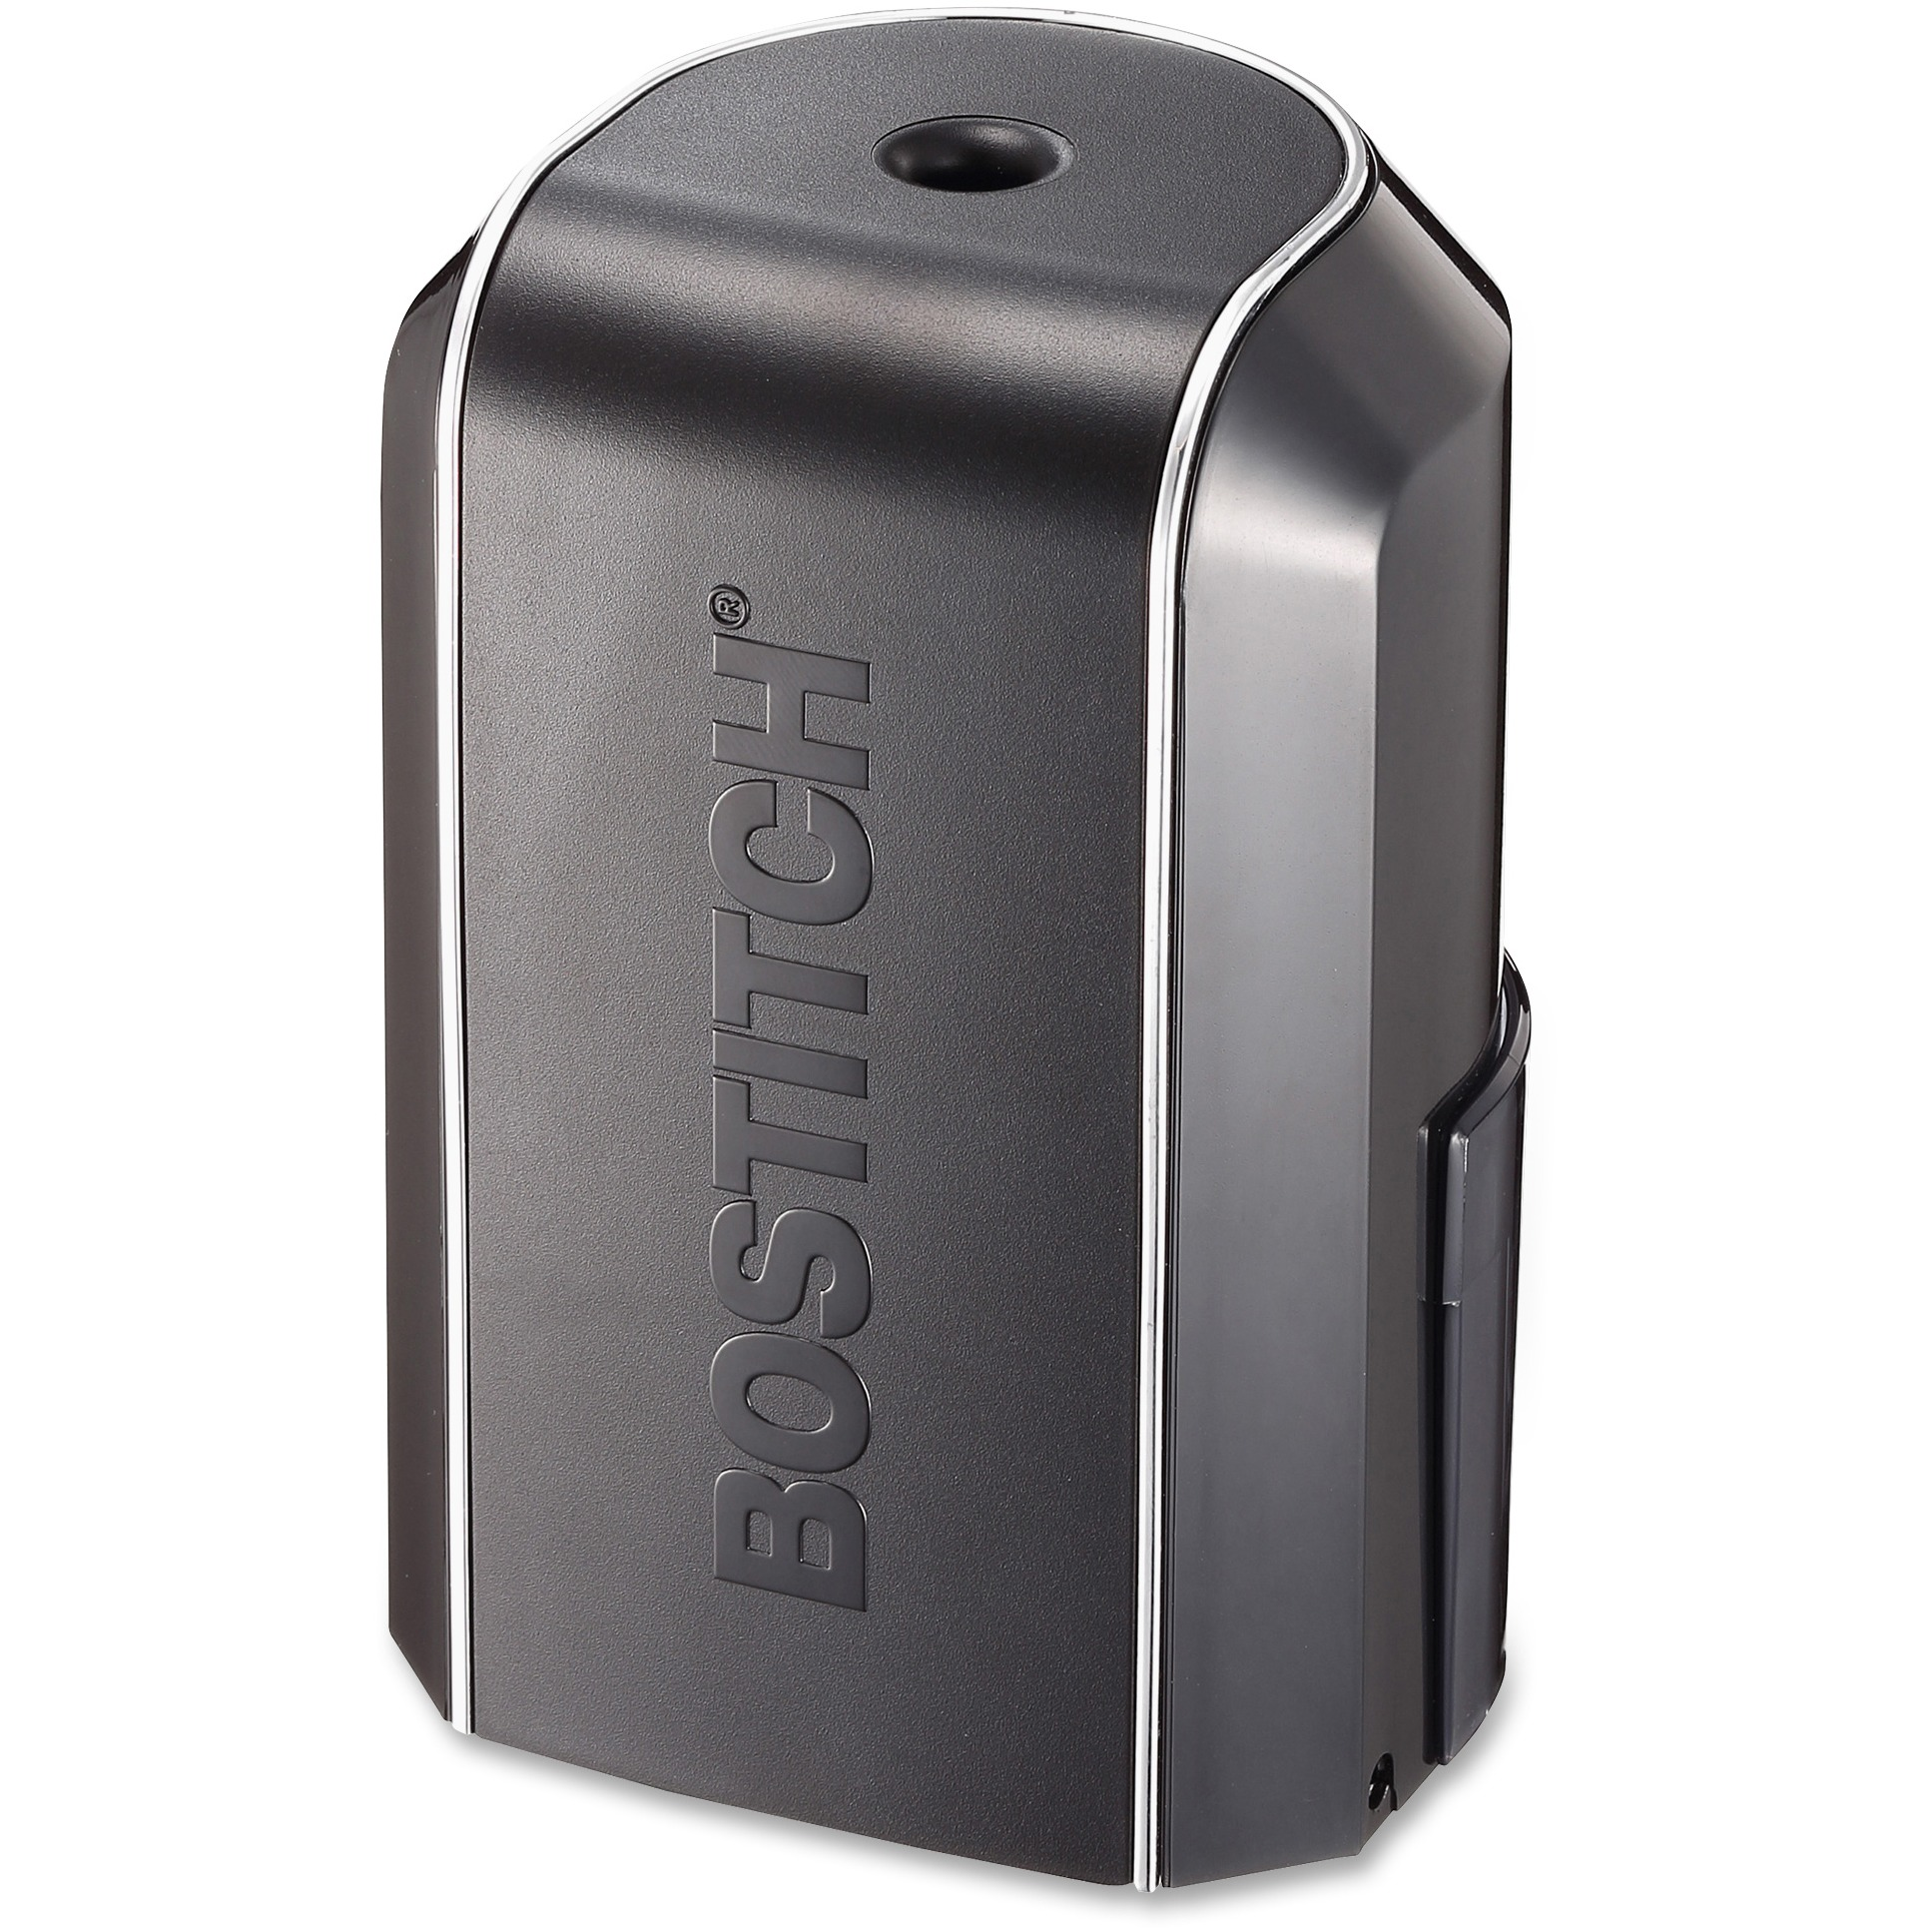 Stanley Bostitch Vertical Electric Pencil Sharpener, Black, 1-Count